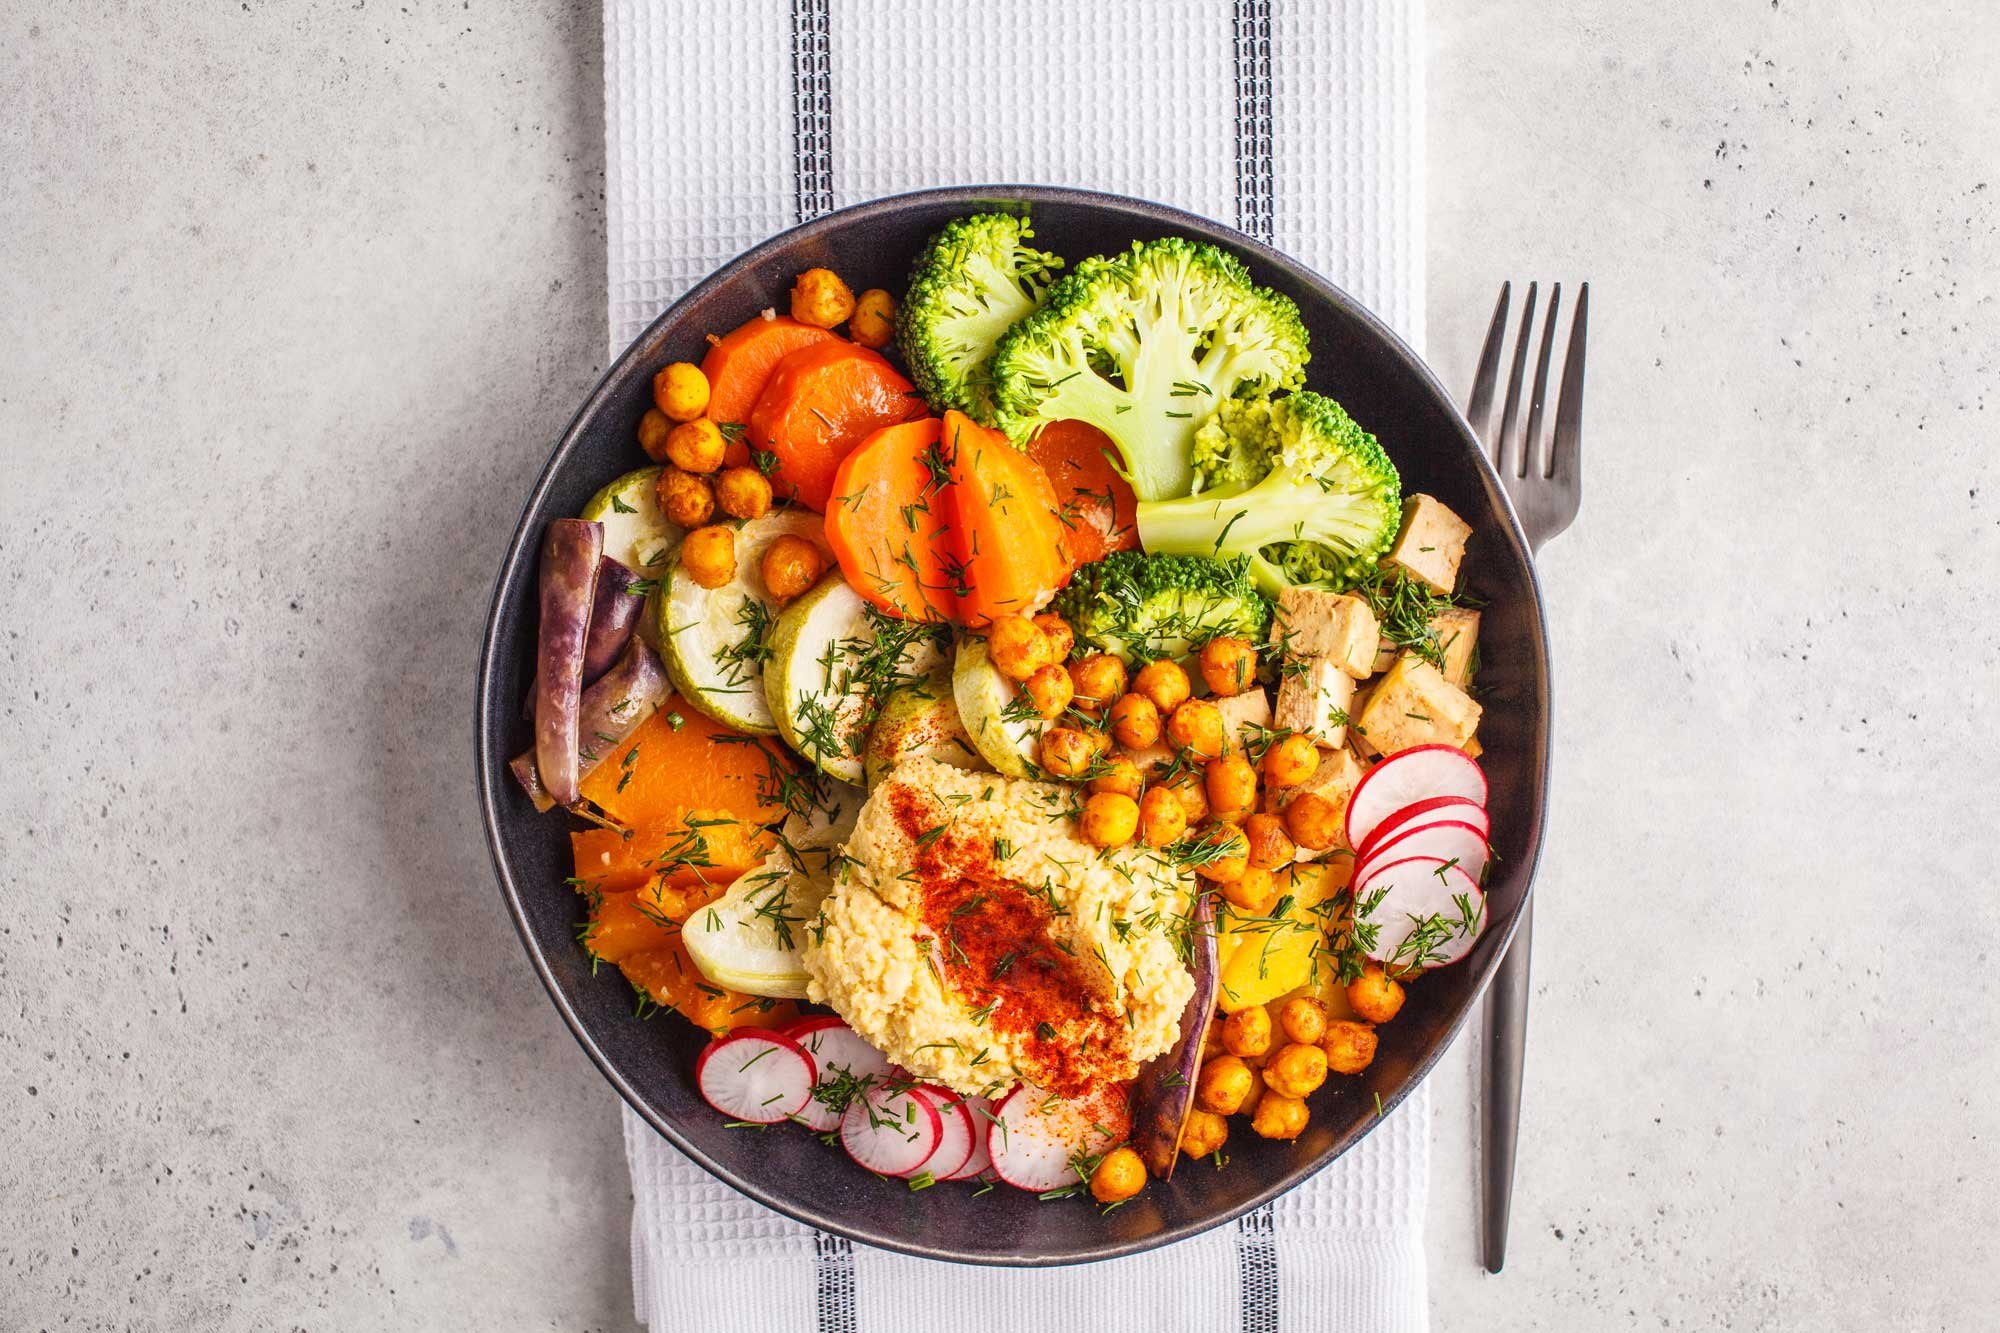 Grain bowl with hummus, roasted chickpeas, radishes, broccoli, sweet potato, carrots, and tofu